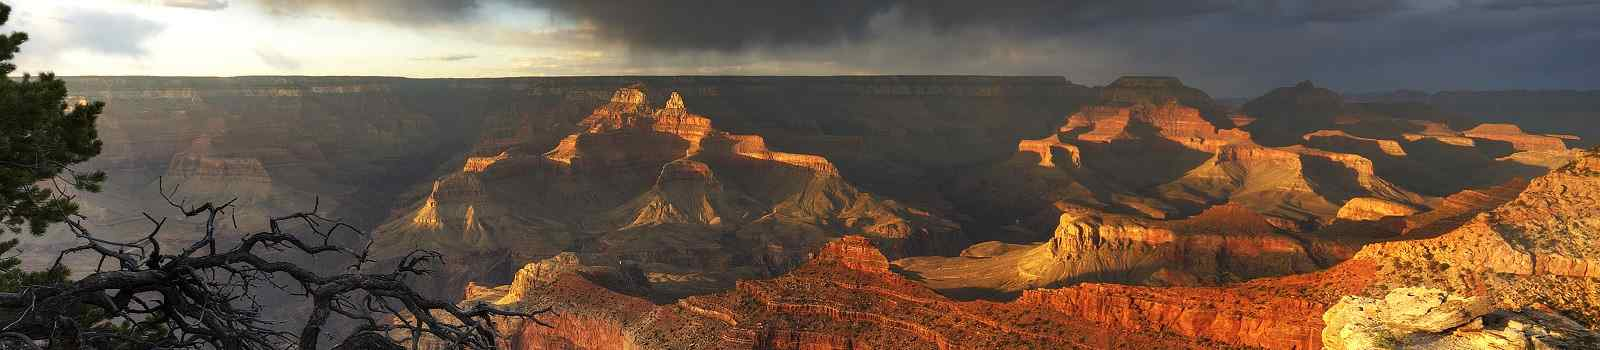 HOHE-PUNKT-WESTEN  GrandCanyon at  sunset-south rim view